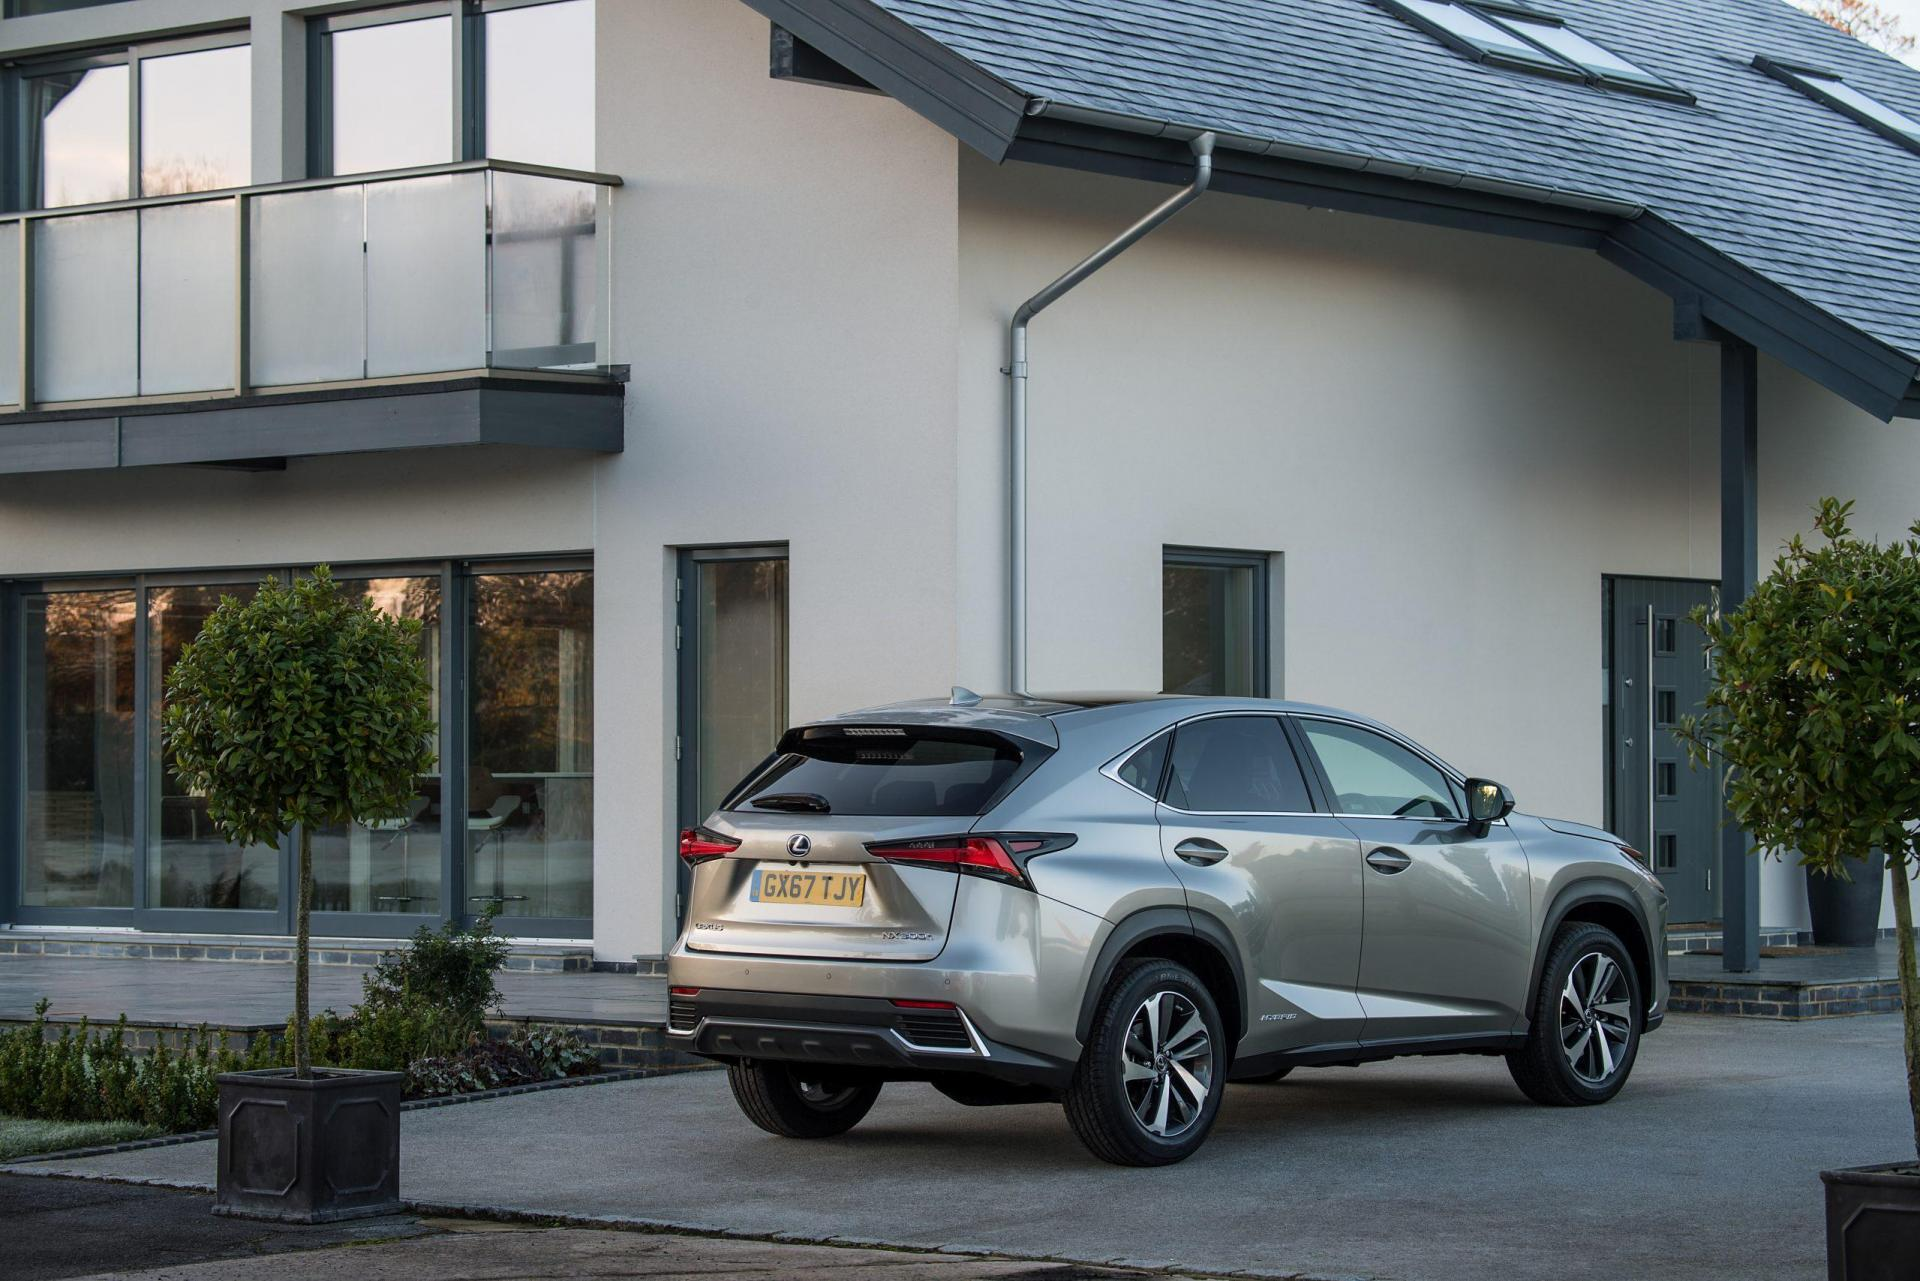 The NX's new parking system can bring the car to a stop if it notices an obstacle.